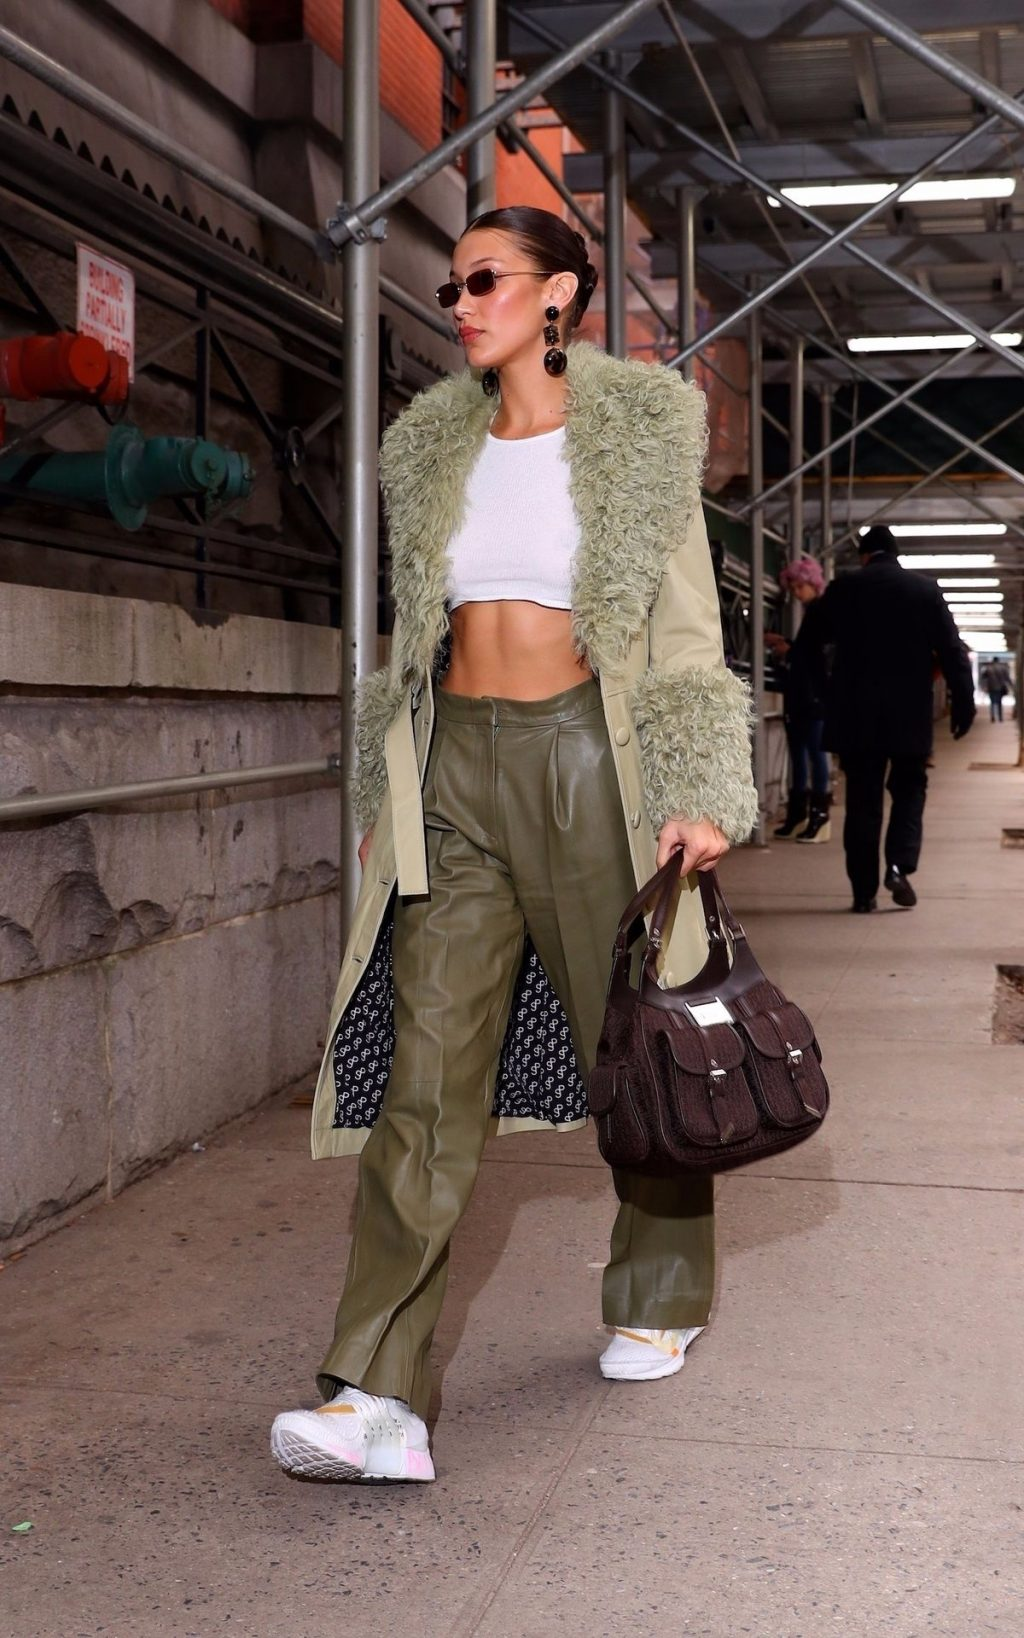 Bella Hadid See through The Fappening Blog 22 1024x1638 - Braless Bella Hadid Arrives at the Park Avenue Armory for the Marc Jacobs Fashion Show (59 Photos)